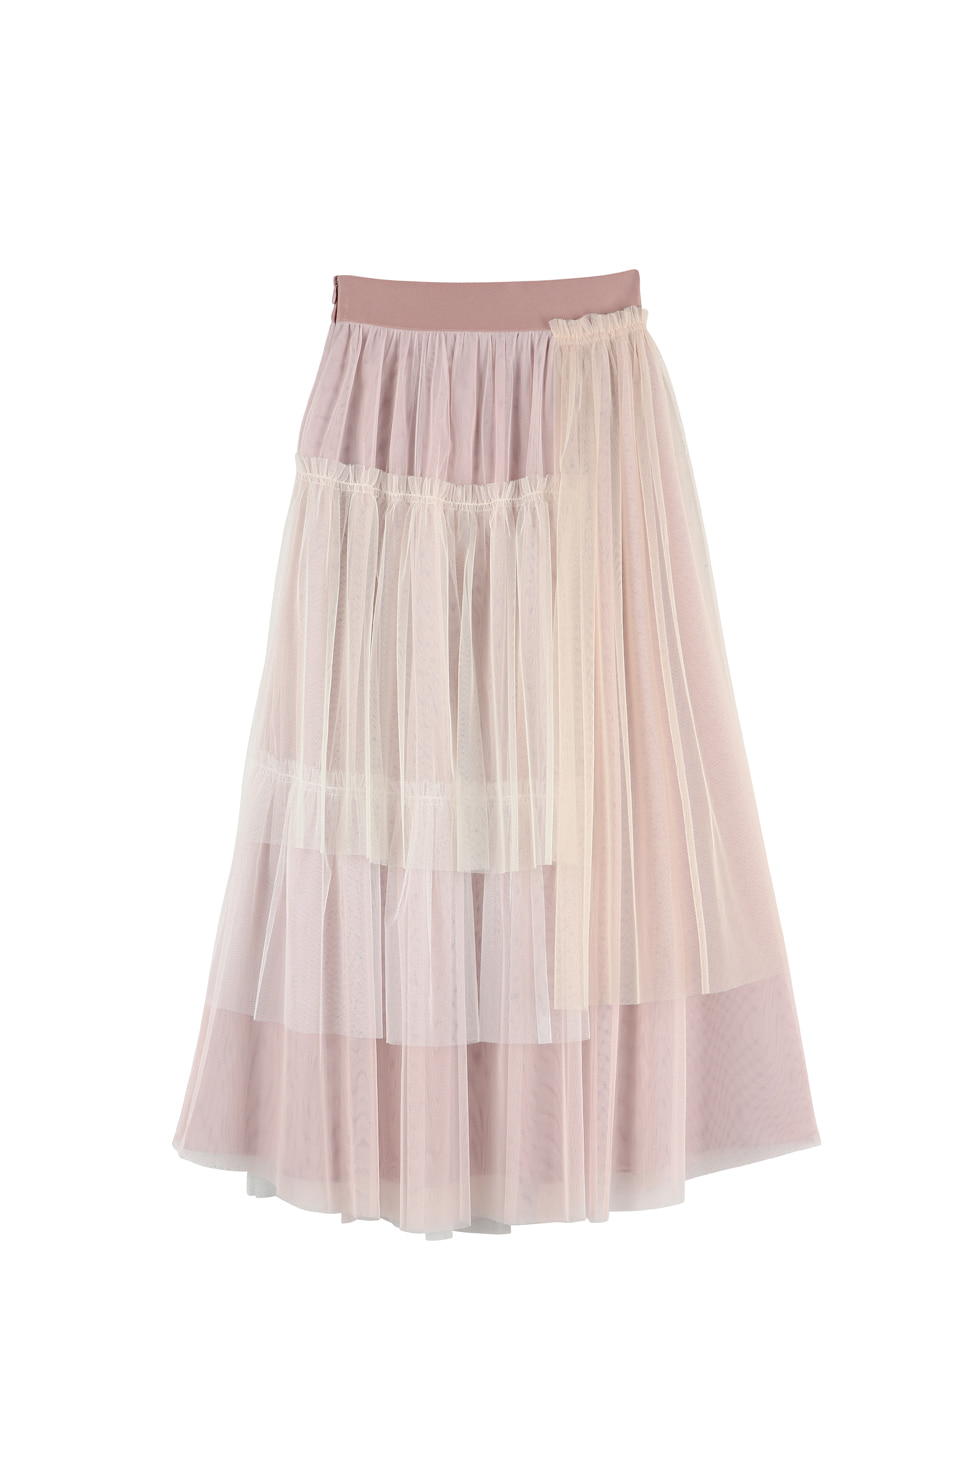 UNBALANCED TULLED SKIRT - PINK